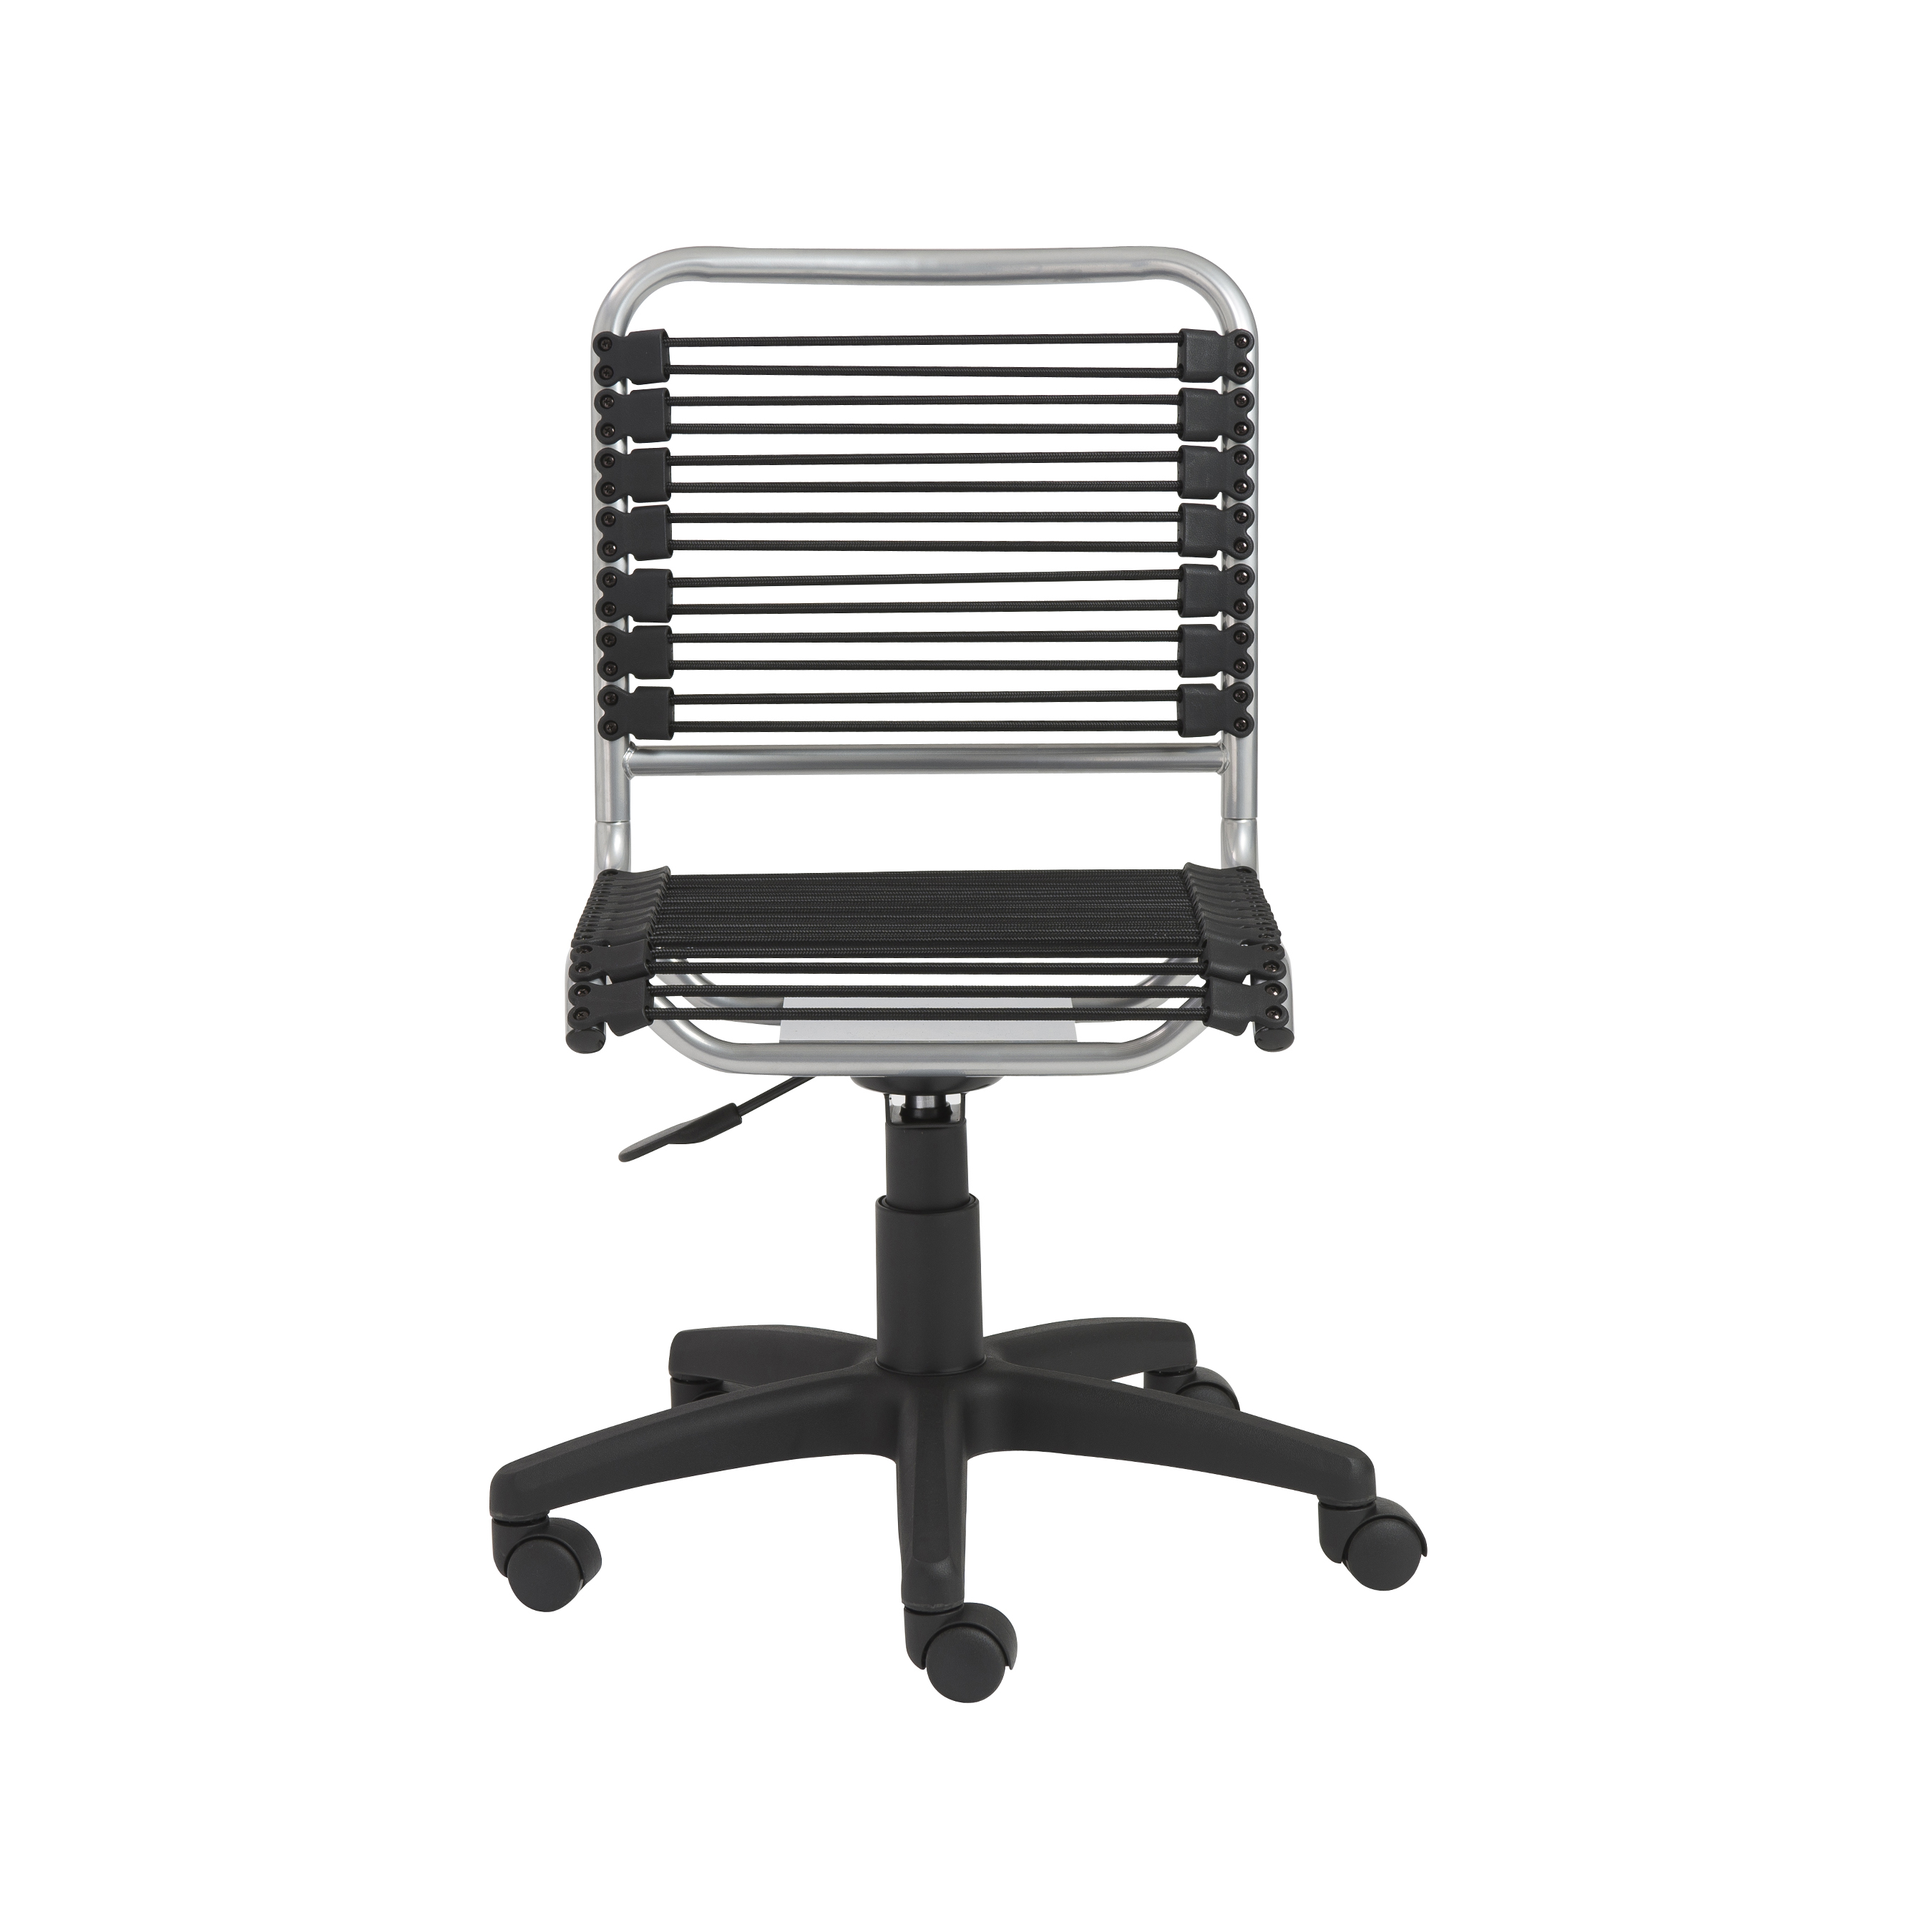 Bungie Low Back fice Chair Euro Style